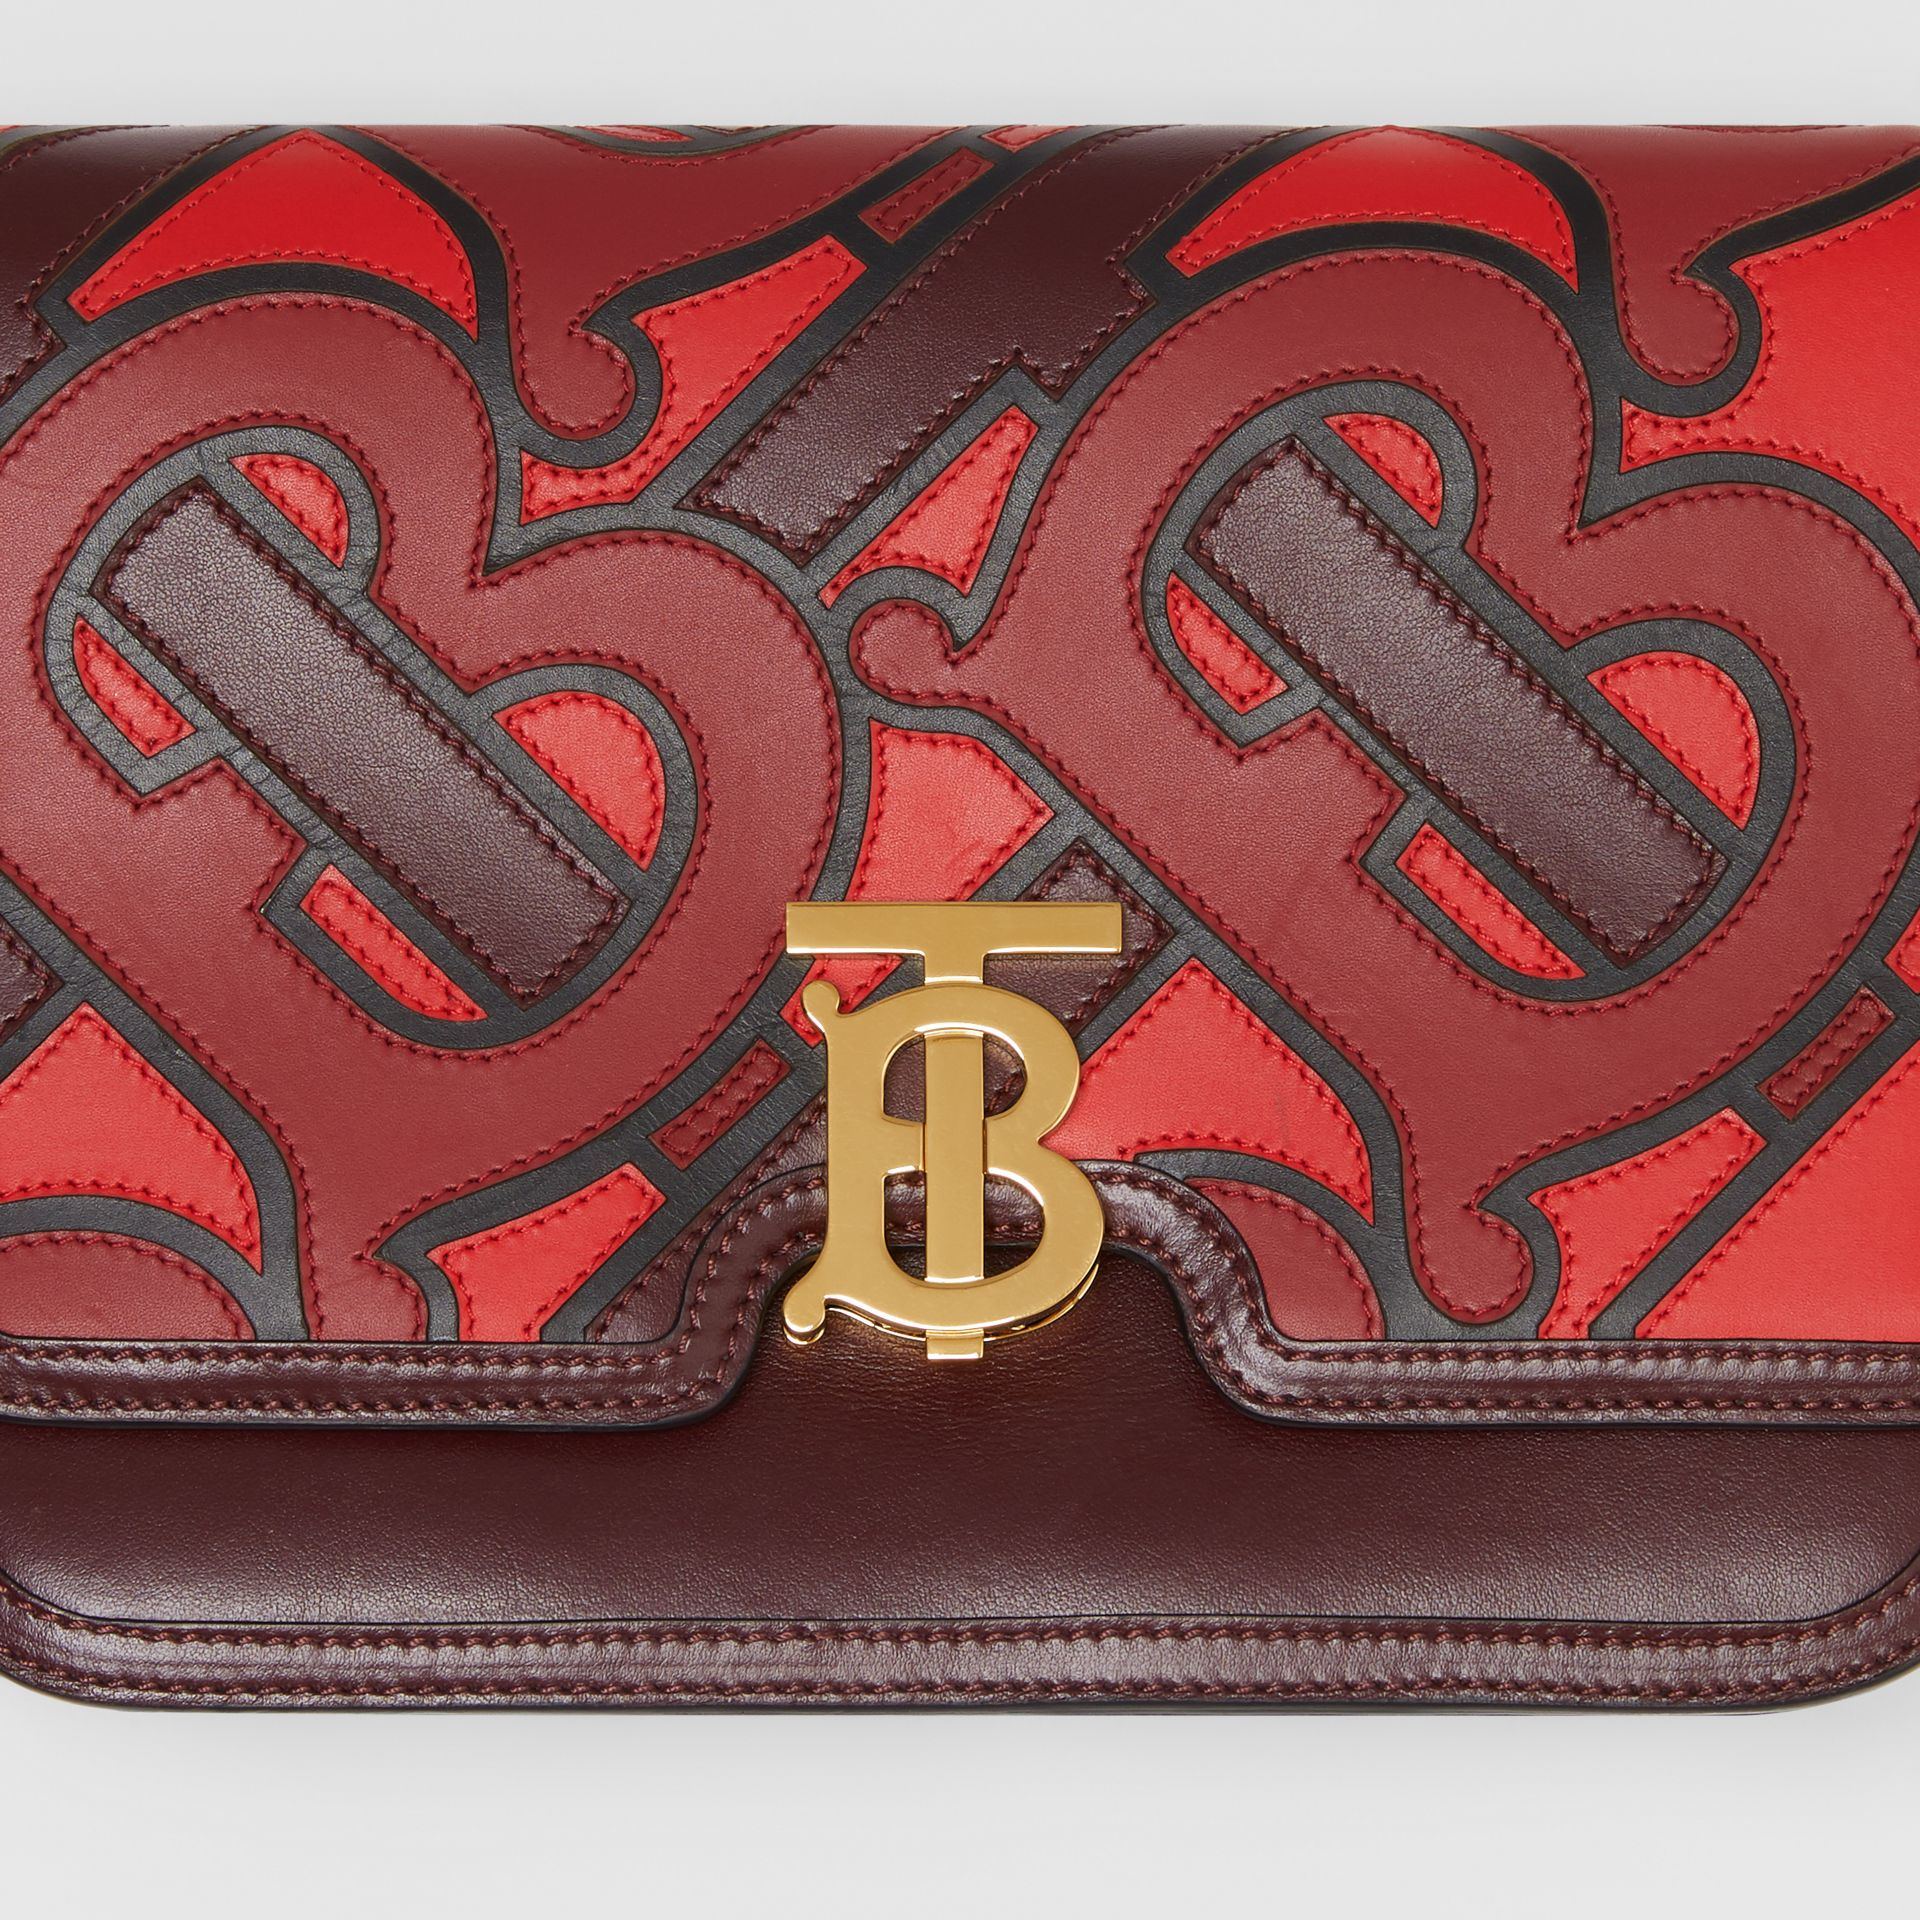 Medium Monogram Appliqué Leather TB Bag in Oxblood - Women | Burberry Hong Kong - gallery image 1